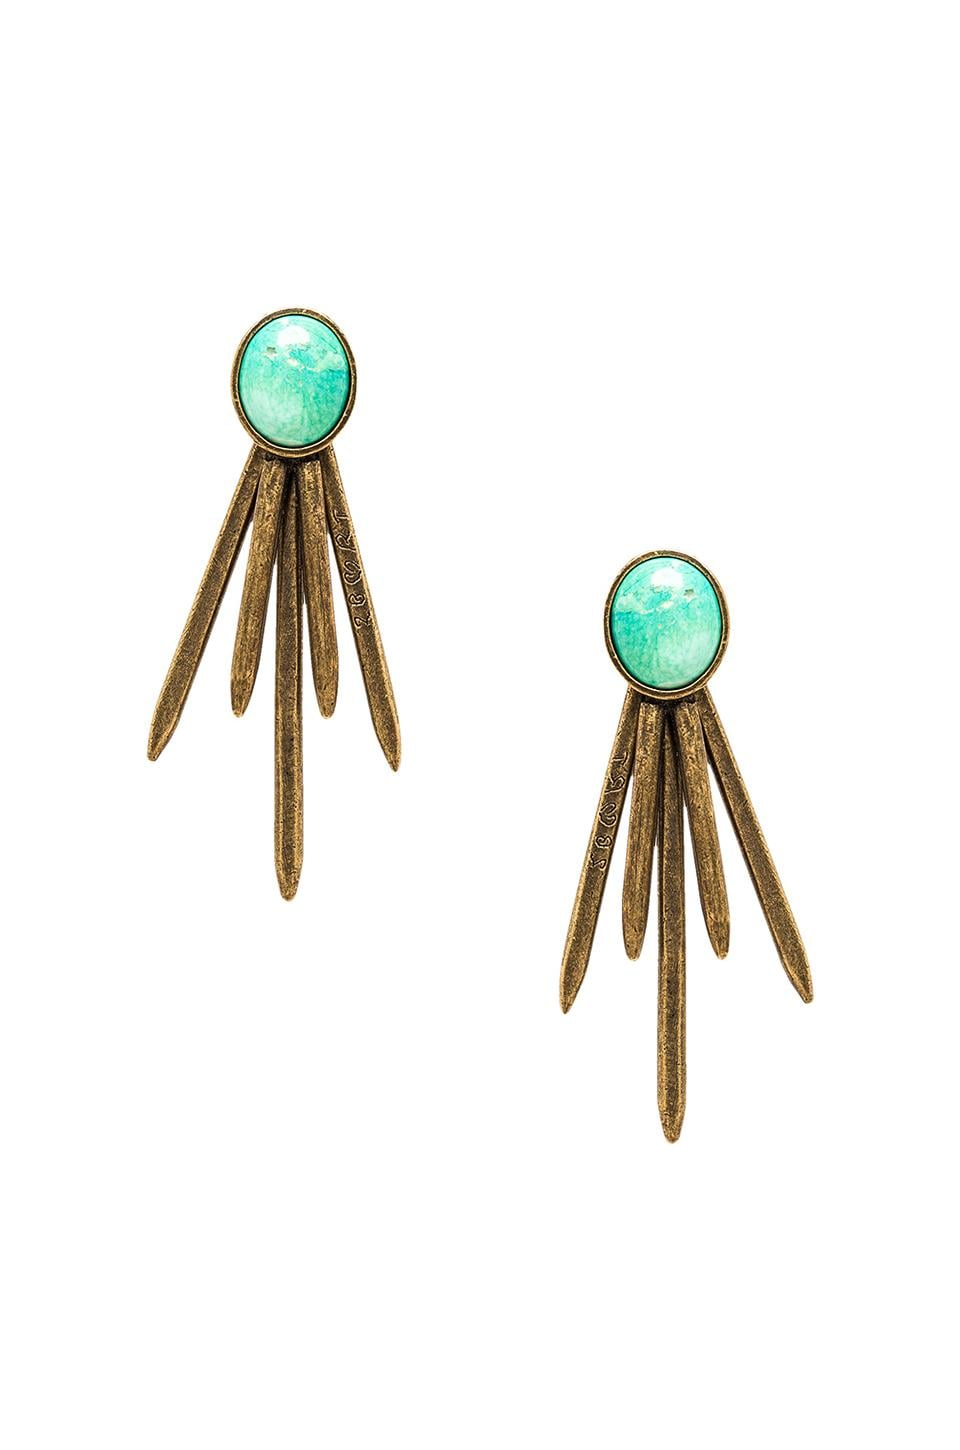 2 Bandits Pick Up Sticks Earrings in Gold & Turquoise